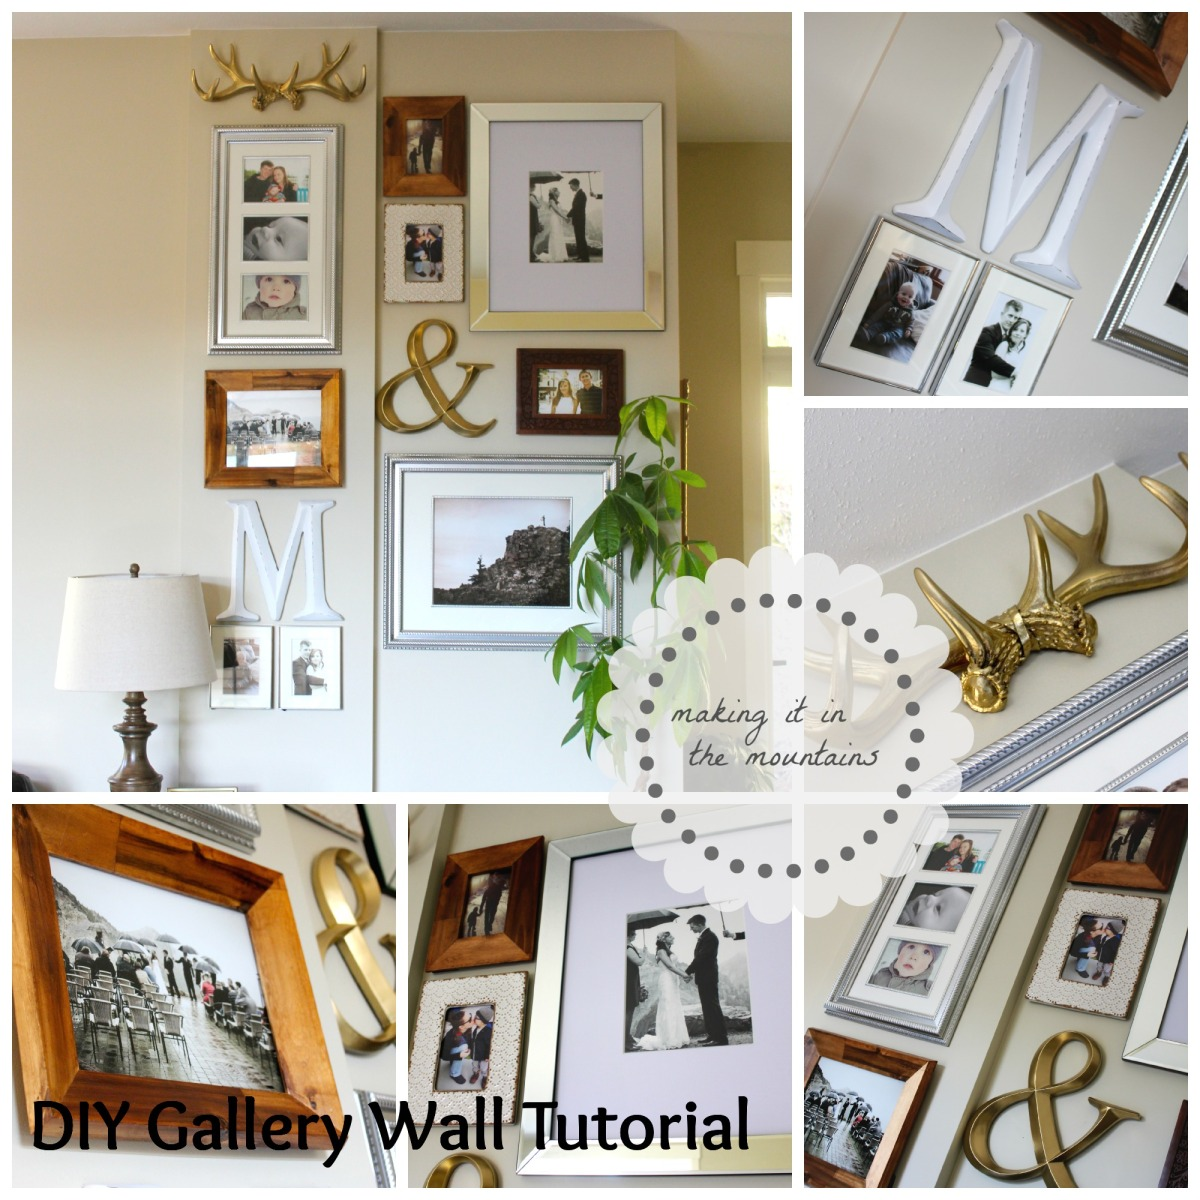 DIY Gallery Wall Tutorial